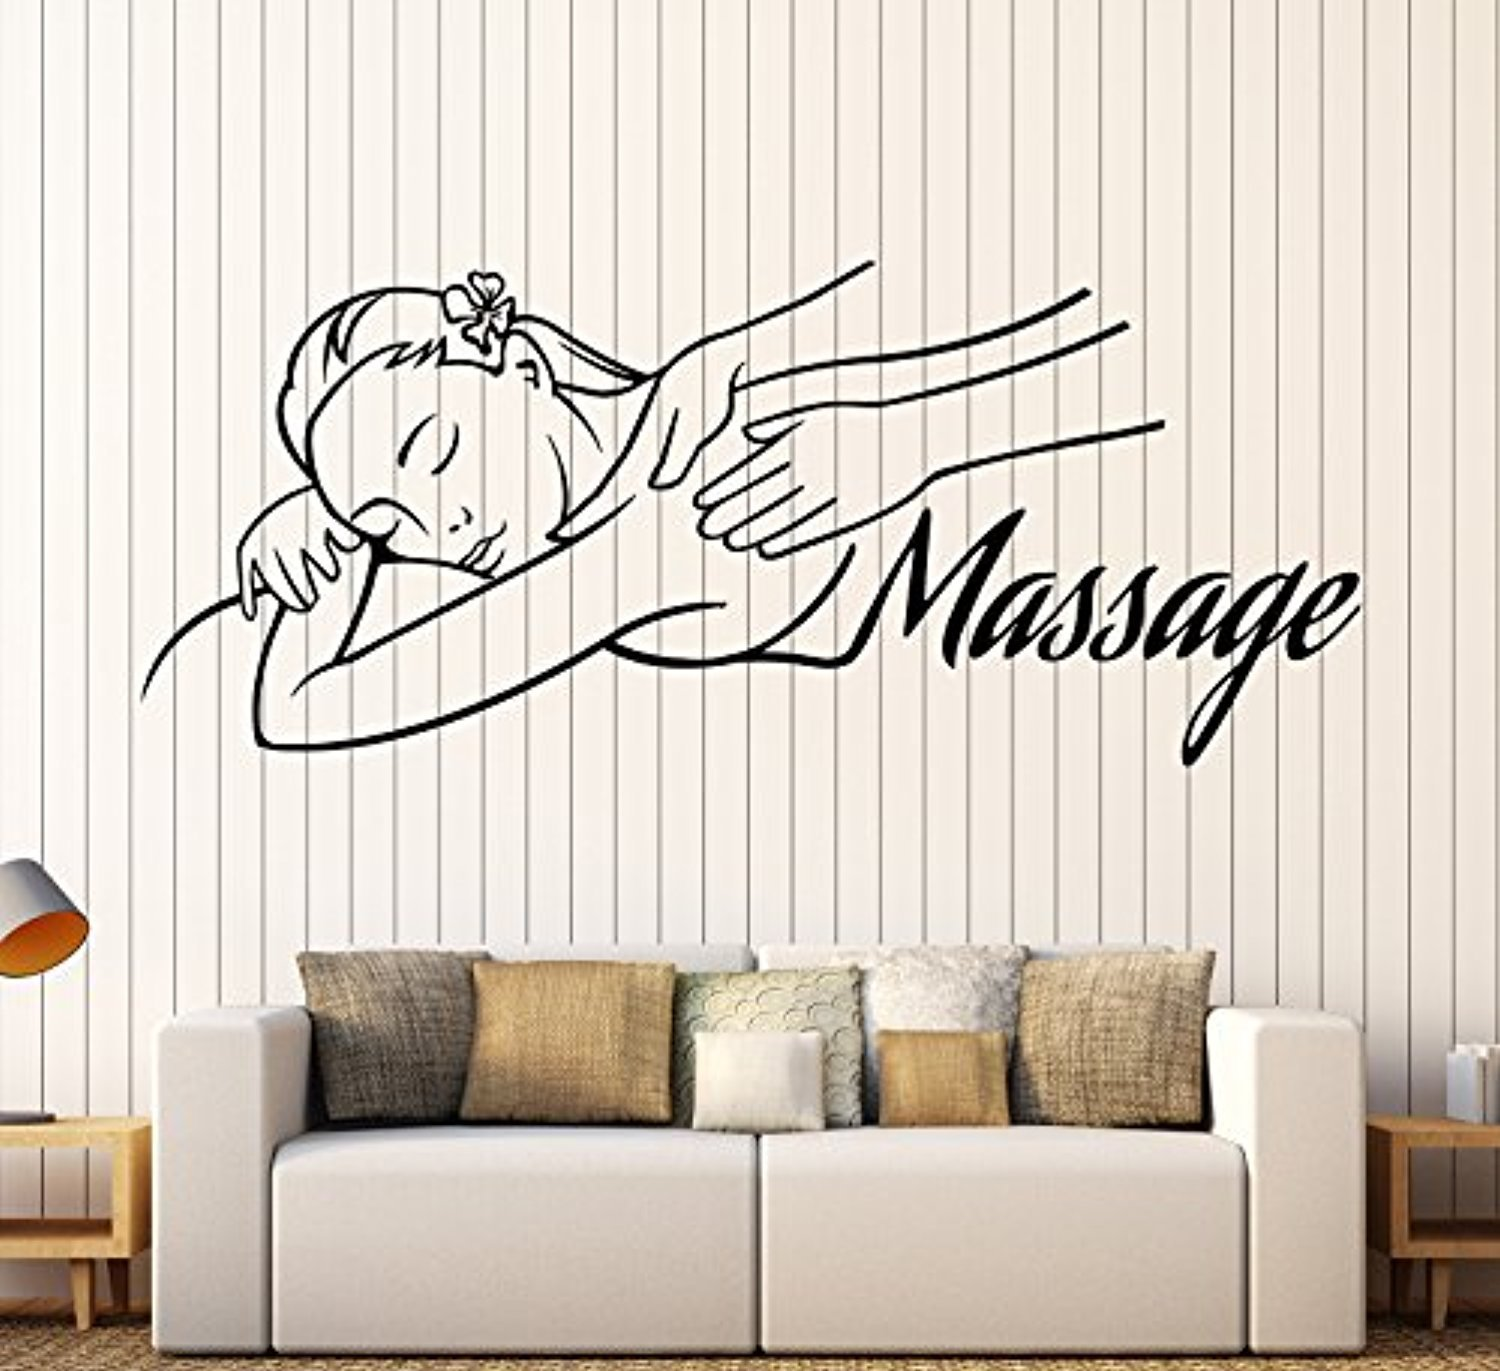 Art of Decals Vinyl Wall Decal Massage Room Spa Woman Relax Beauty Stickers Large Decor 951